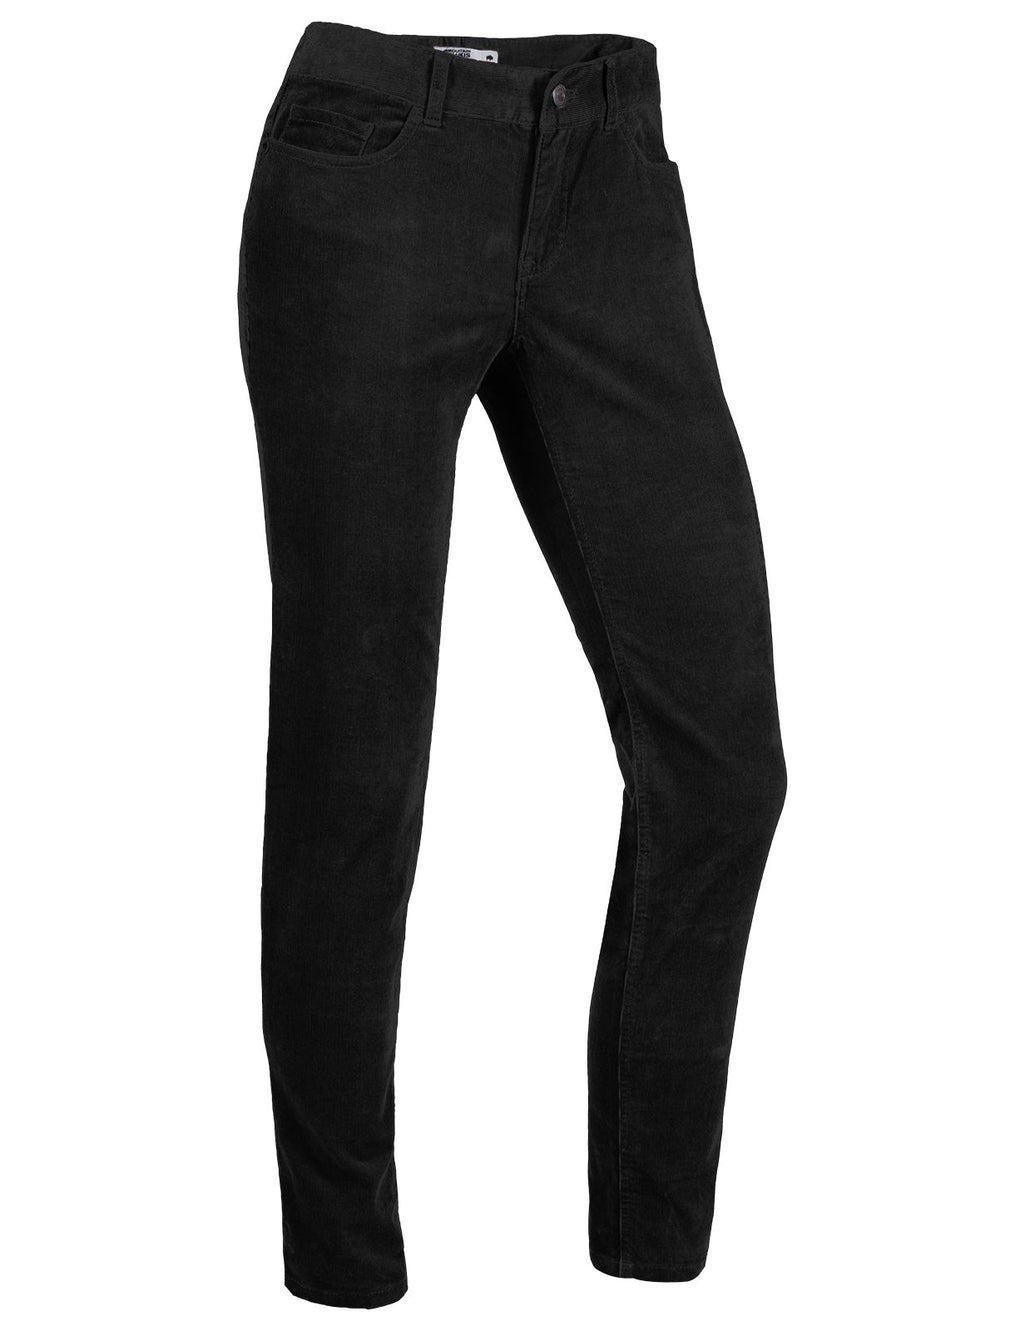 Front angled view of the women's Crest Cord Pant in black color.